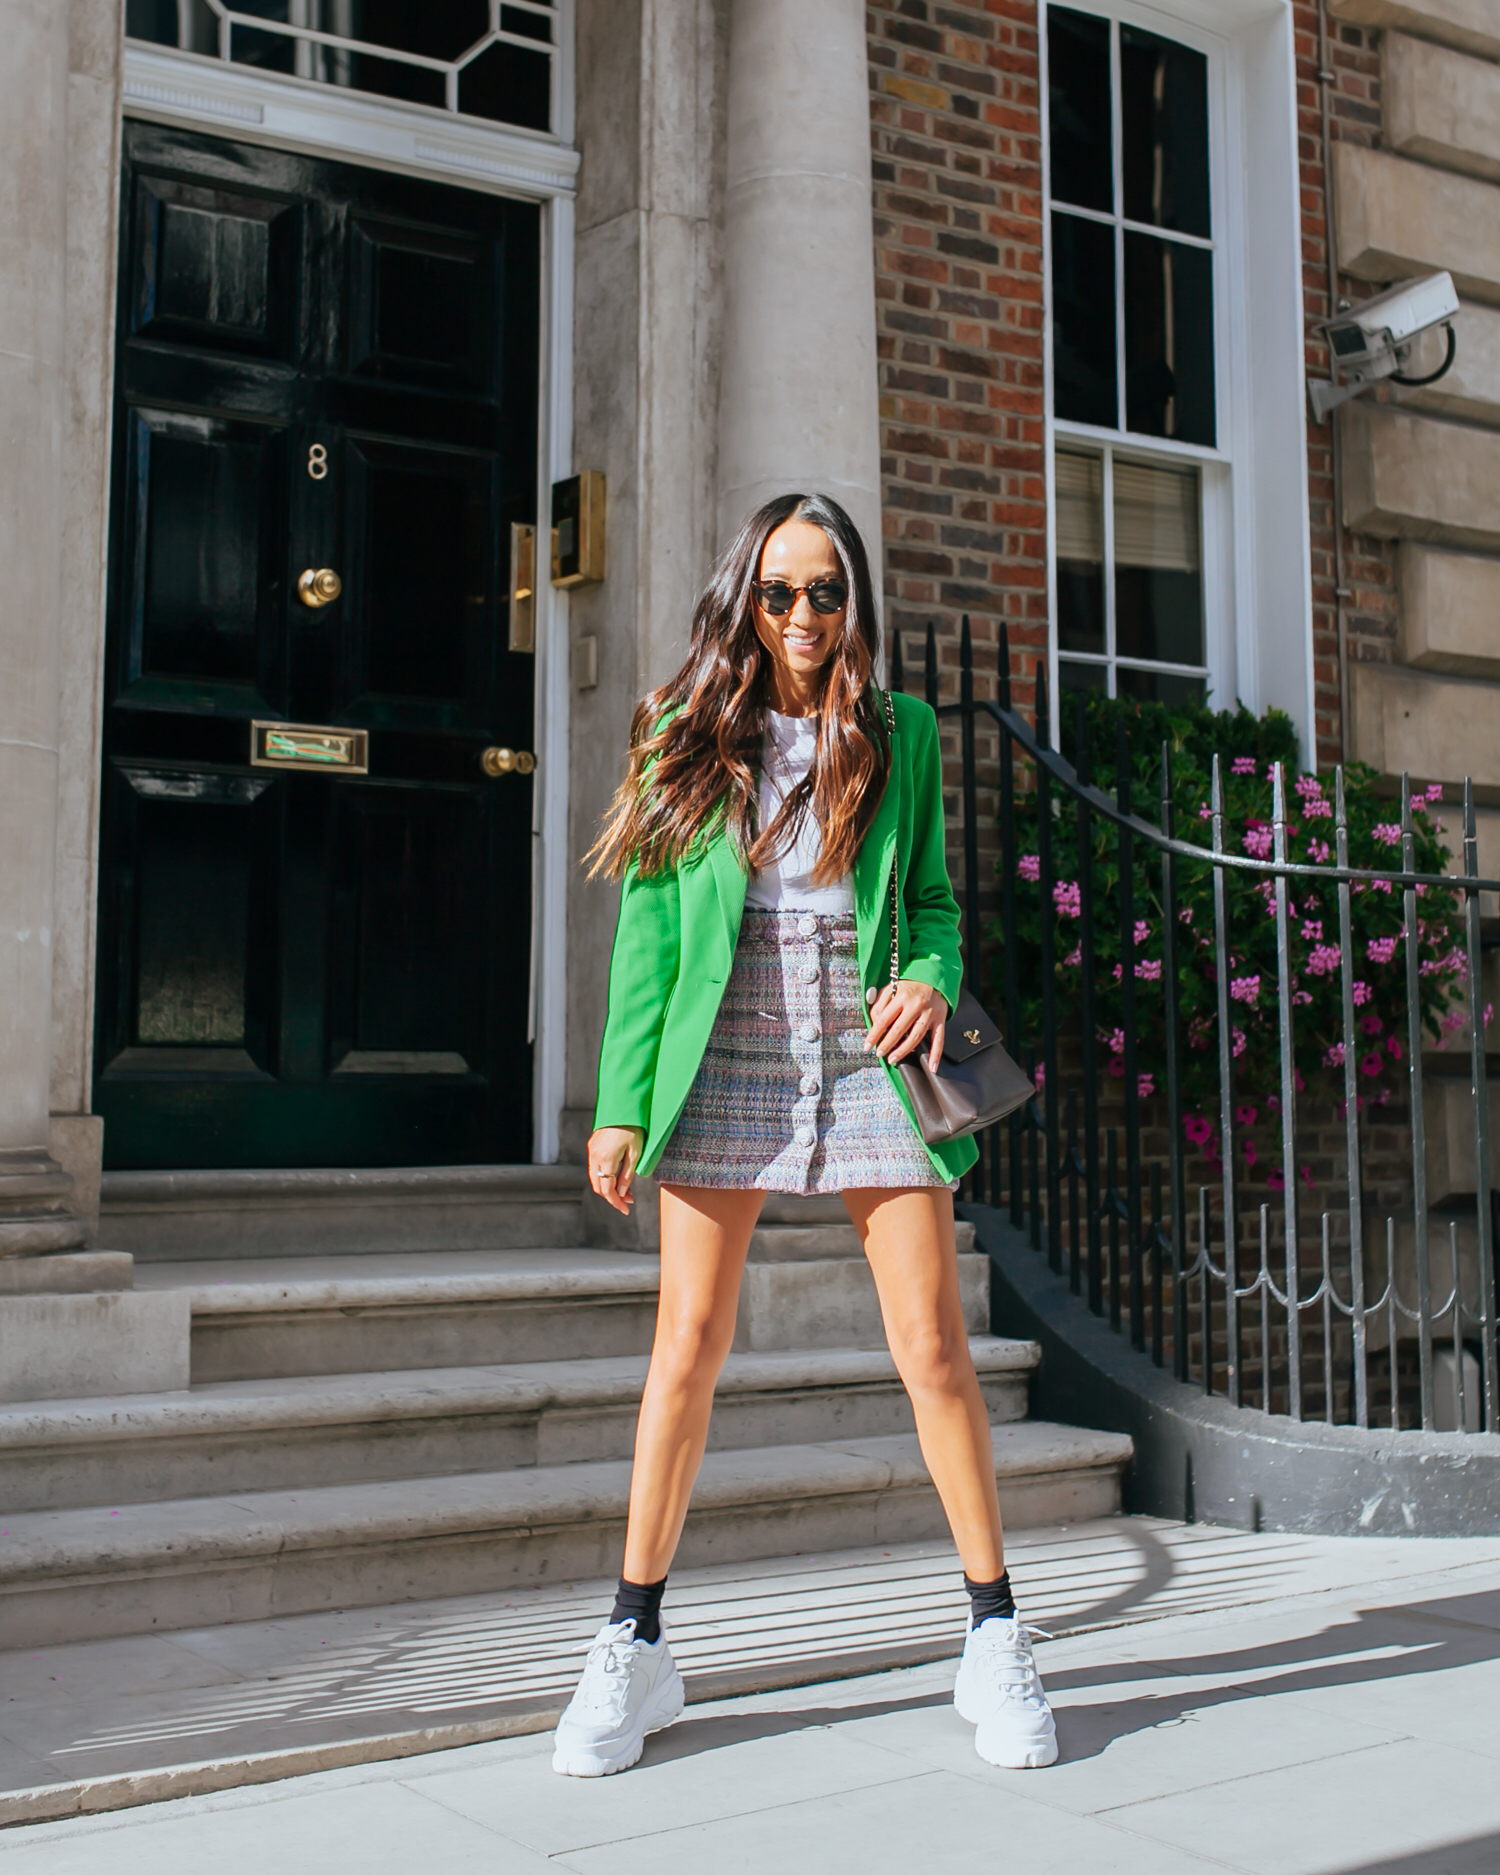 how am i incorporating green into my outfits? - As the return of tailoring is the single biggest trend right now, I opted for a blazer.The look of suiting has become modern and cool rather than corporate and therefore is easy to style either as an entire pant suit or simply pair a blazer back to a white tee and bottoms of your choice.